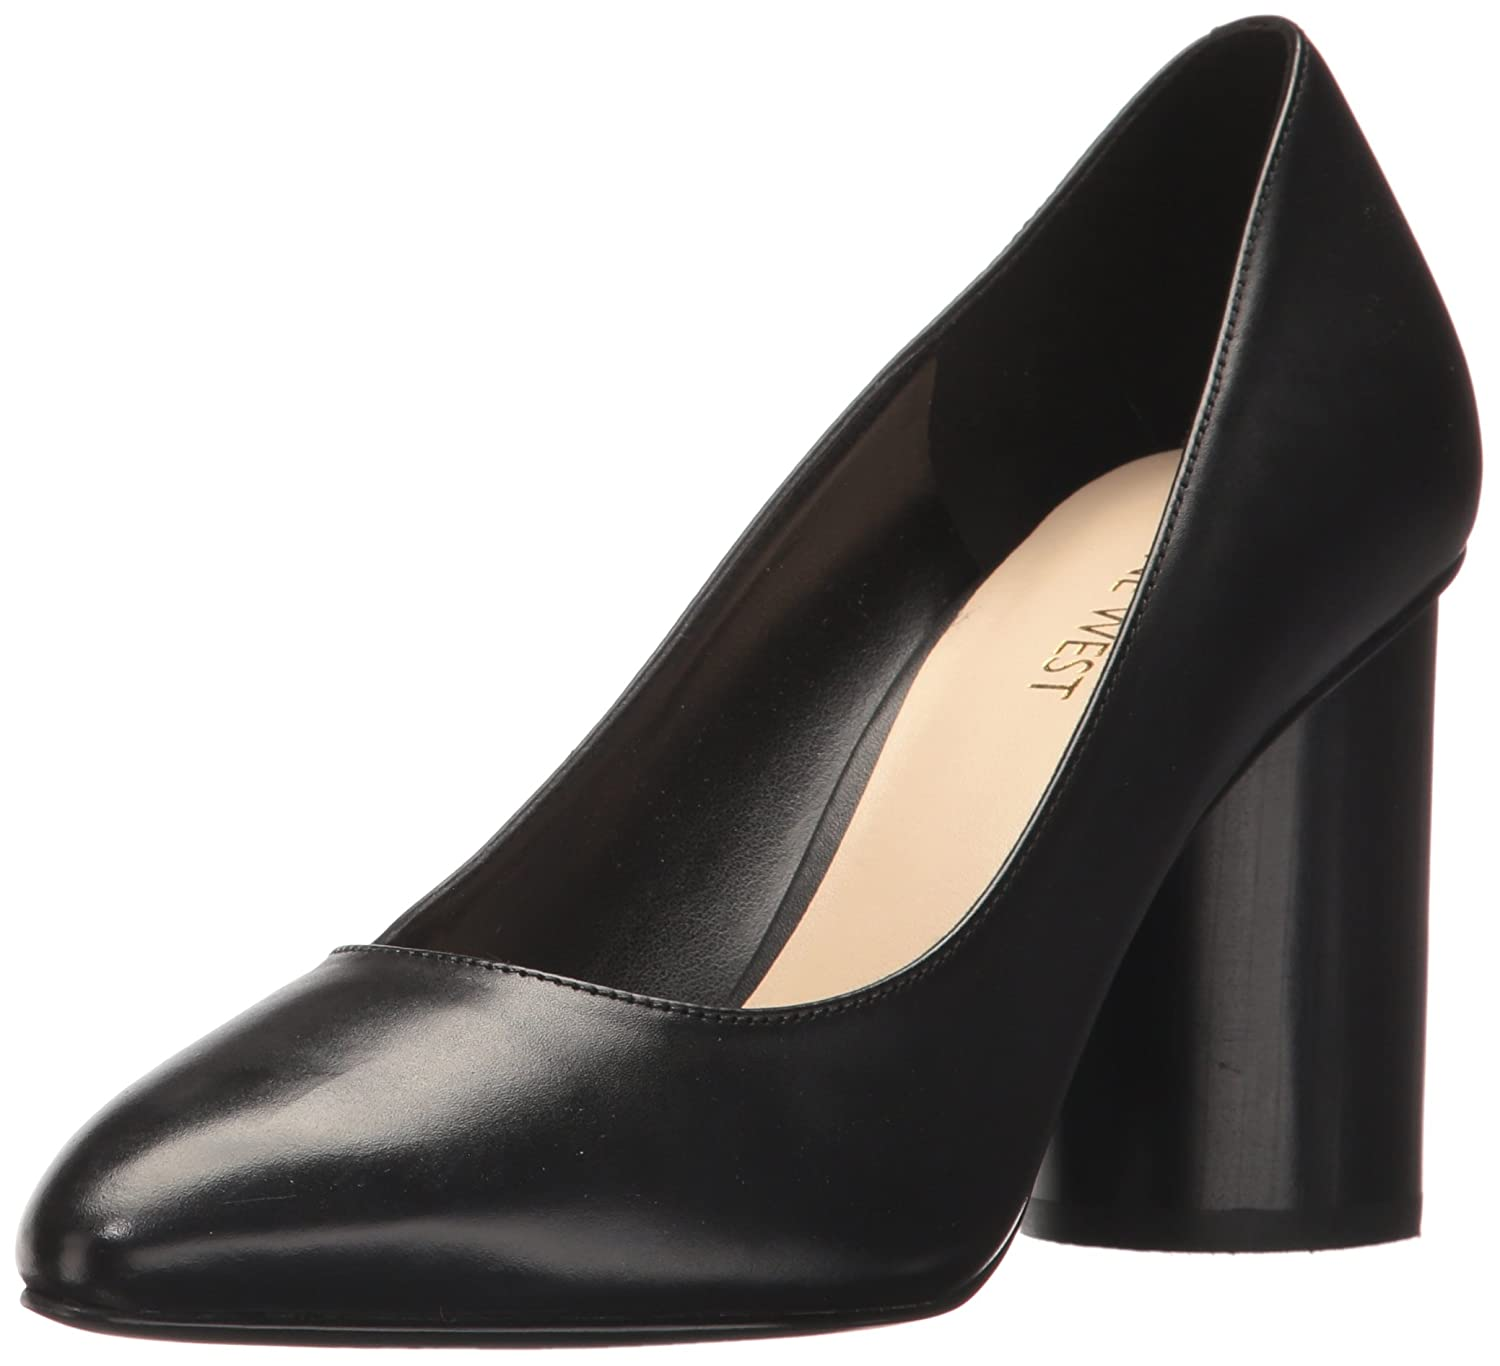 Nine West Women's Cardya Leather Pump B06X91BPQB 9 B(M) US|Black Leather